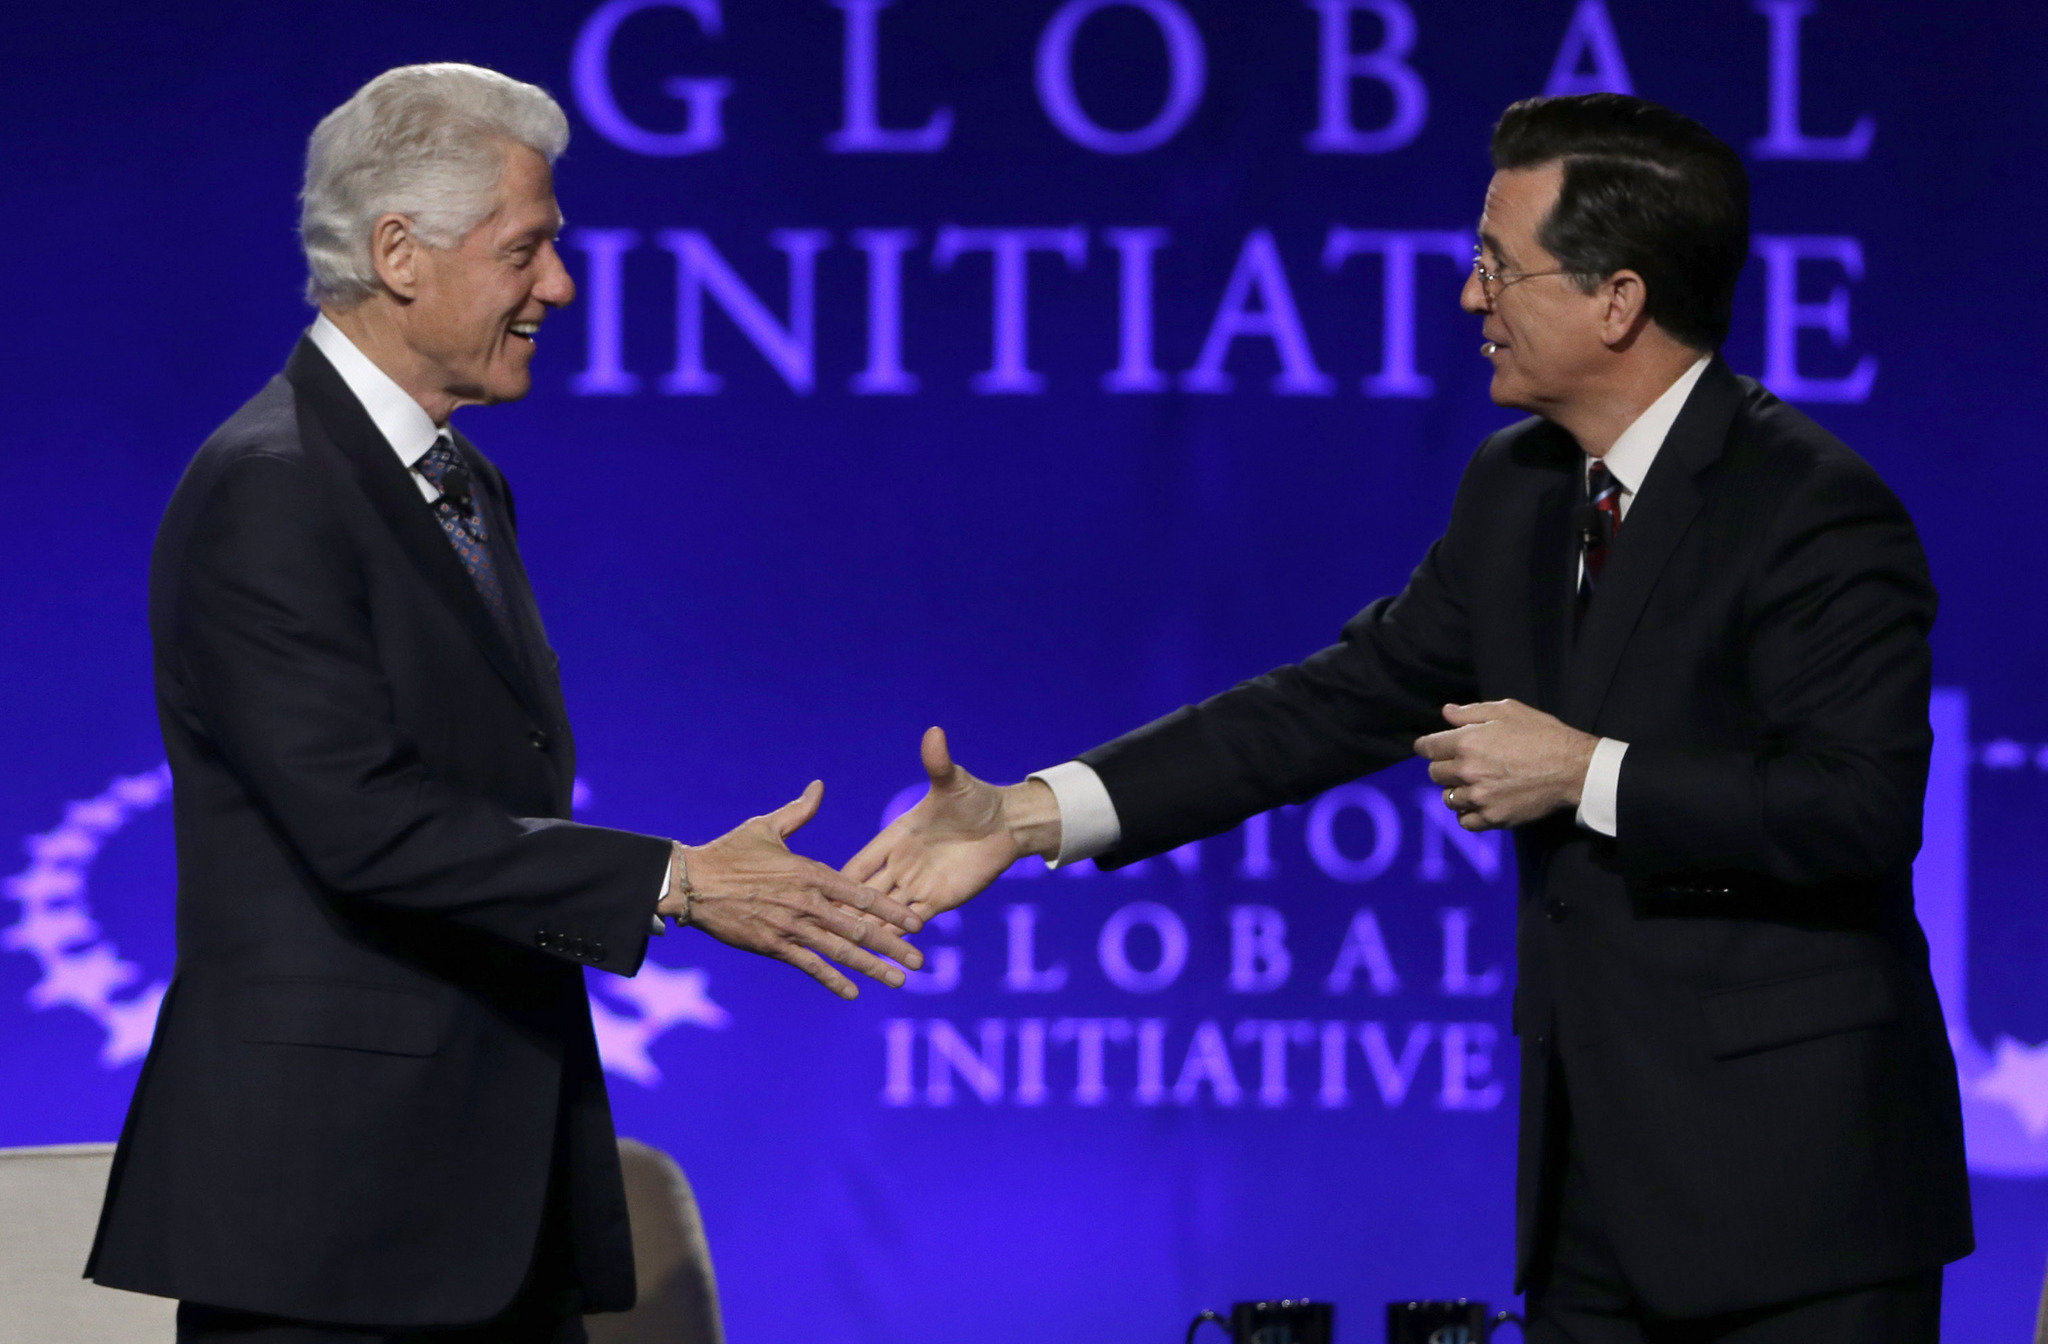 Clinton Group Gave Orders to Colbert